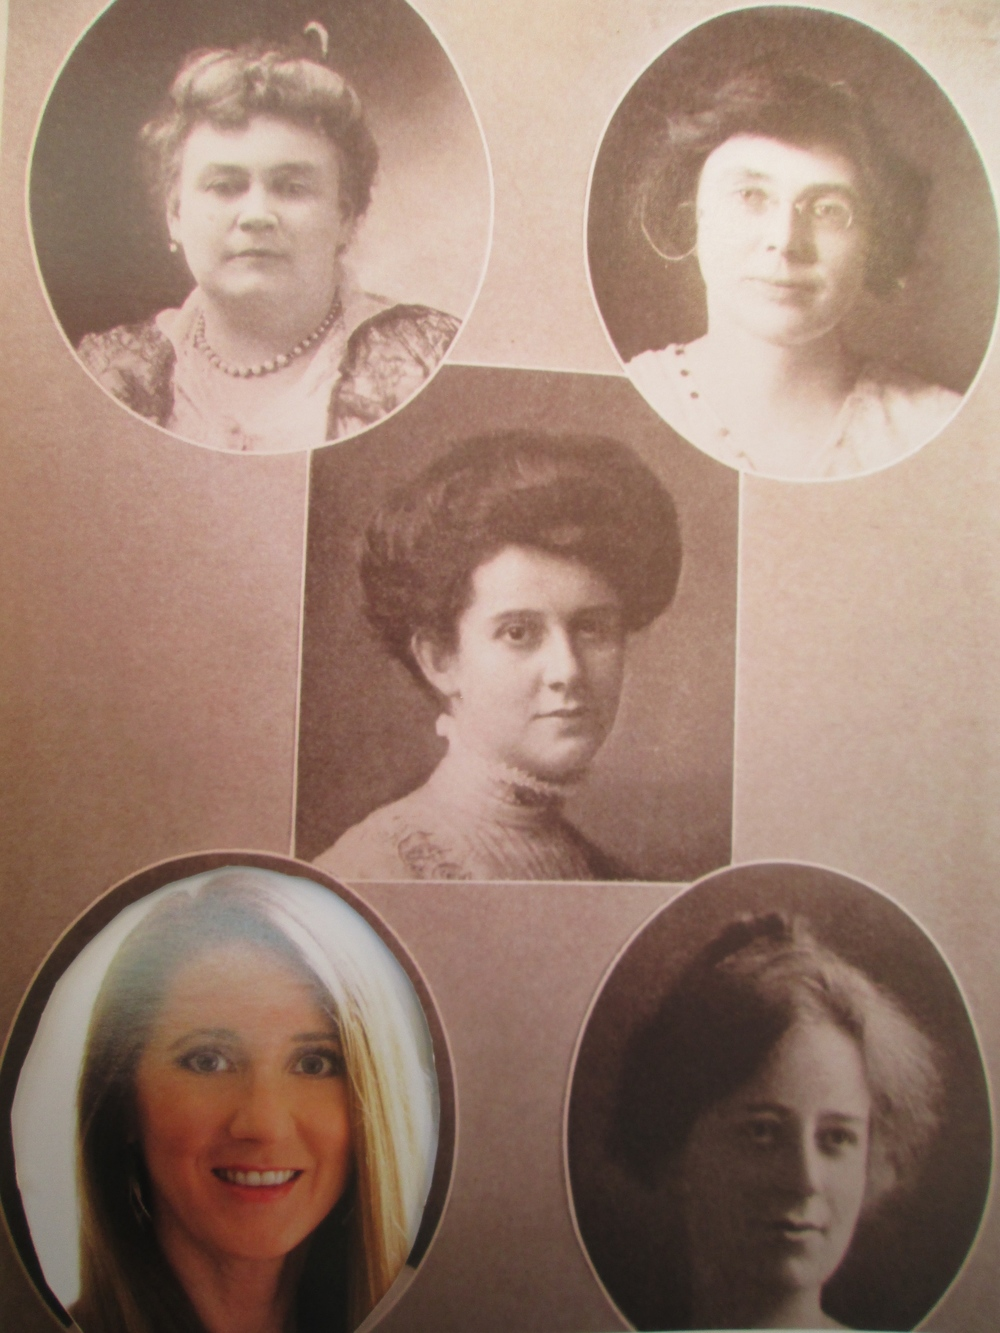 Laura Ackley now joins other Marin women who were part of the Pan-Pacific Exposition. Photo collage by Steefenie WicksPhoto of Laura Ackley by Miguel Farias